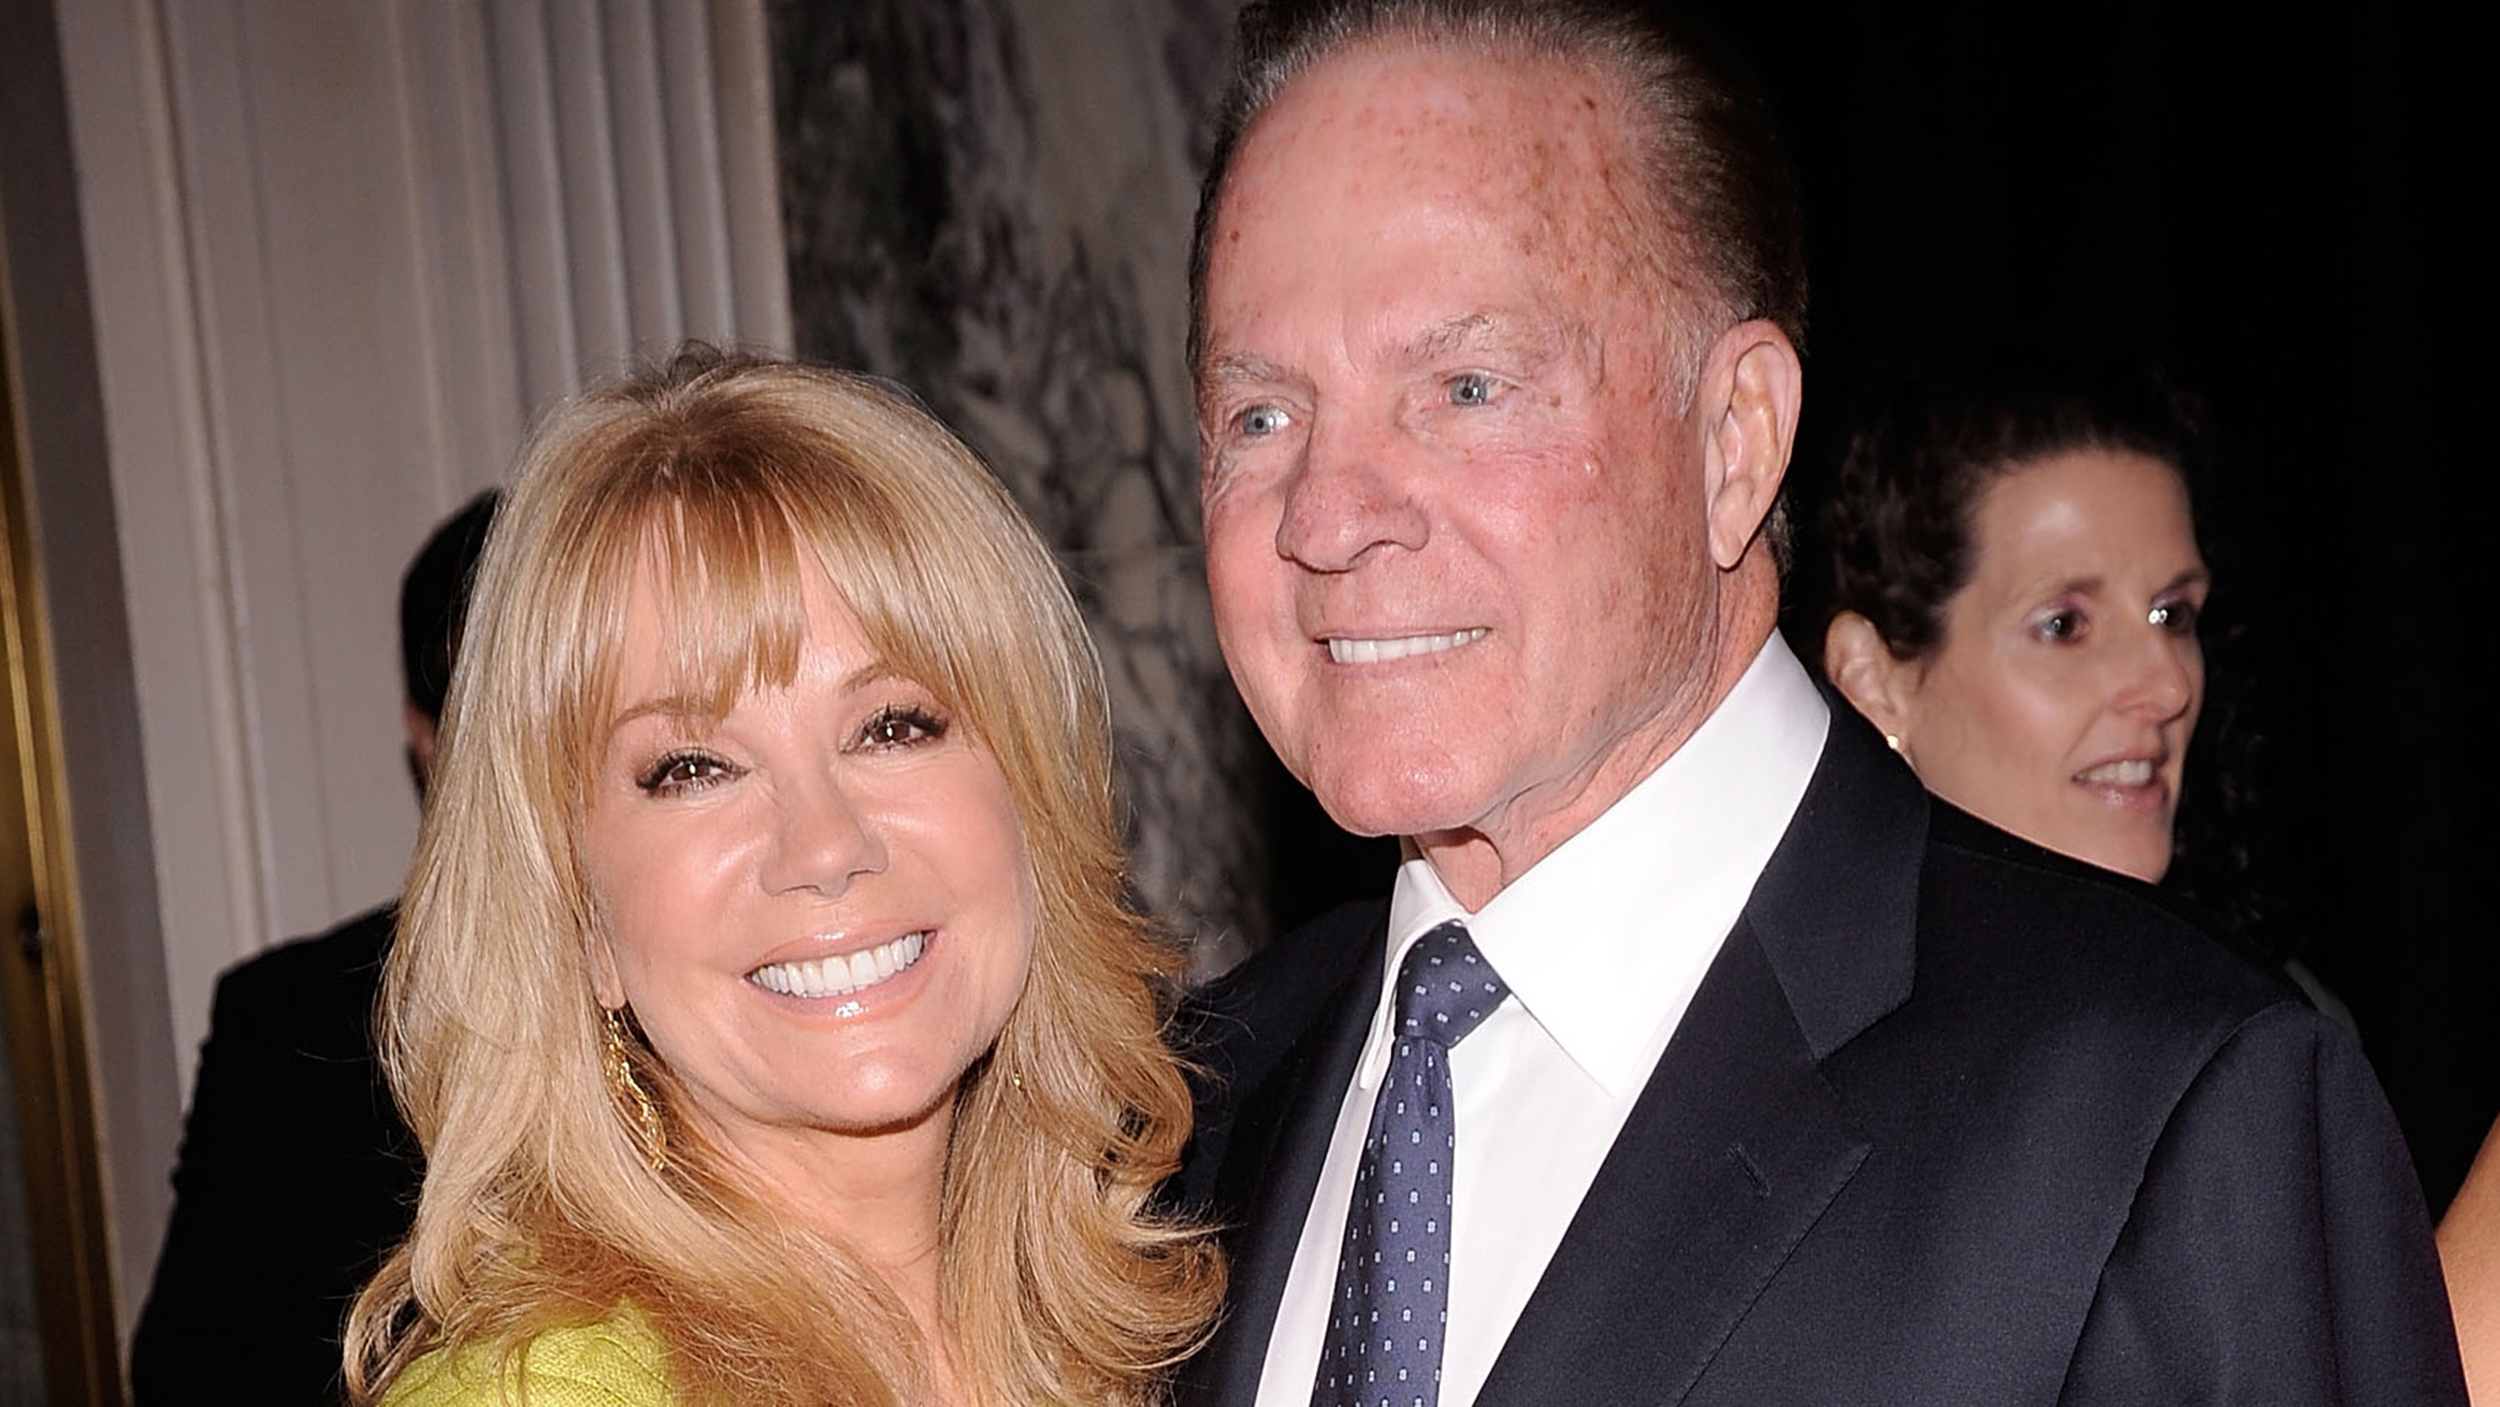 How Frank Gifford proposed Kathie Lee recalls moment in ring size